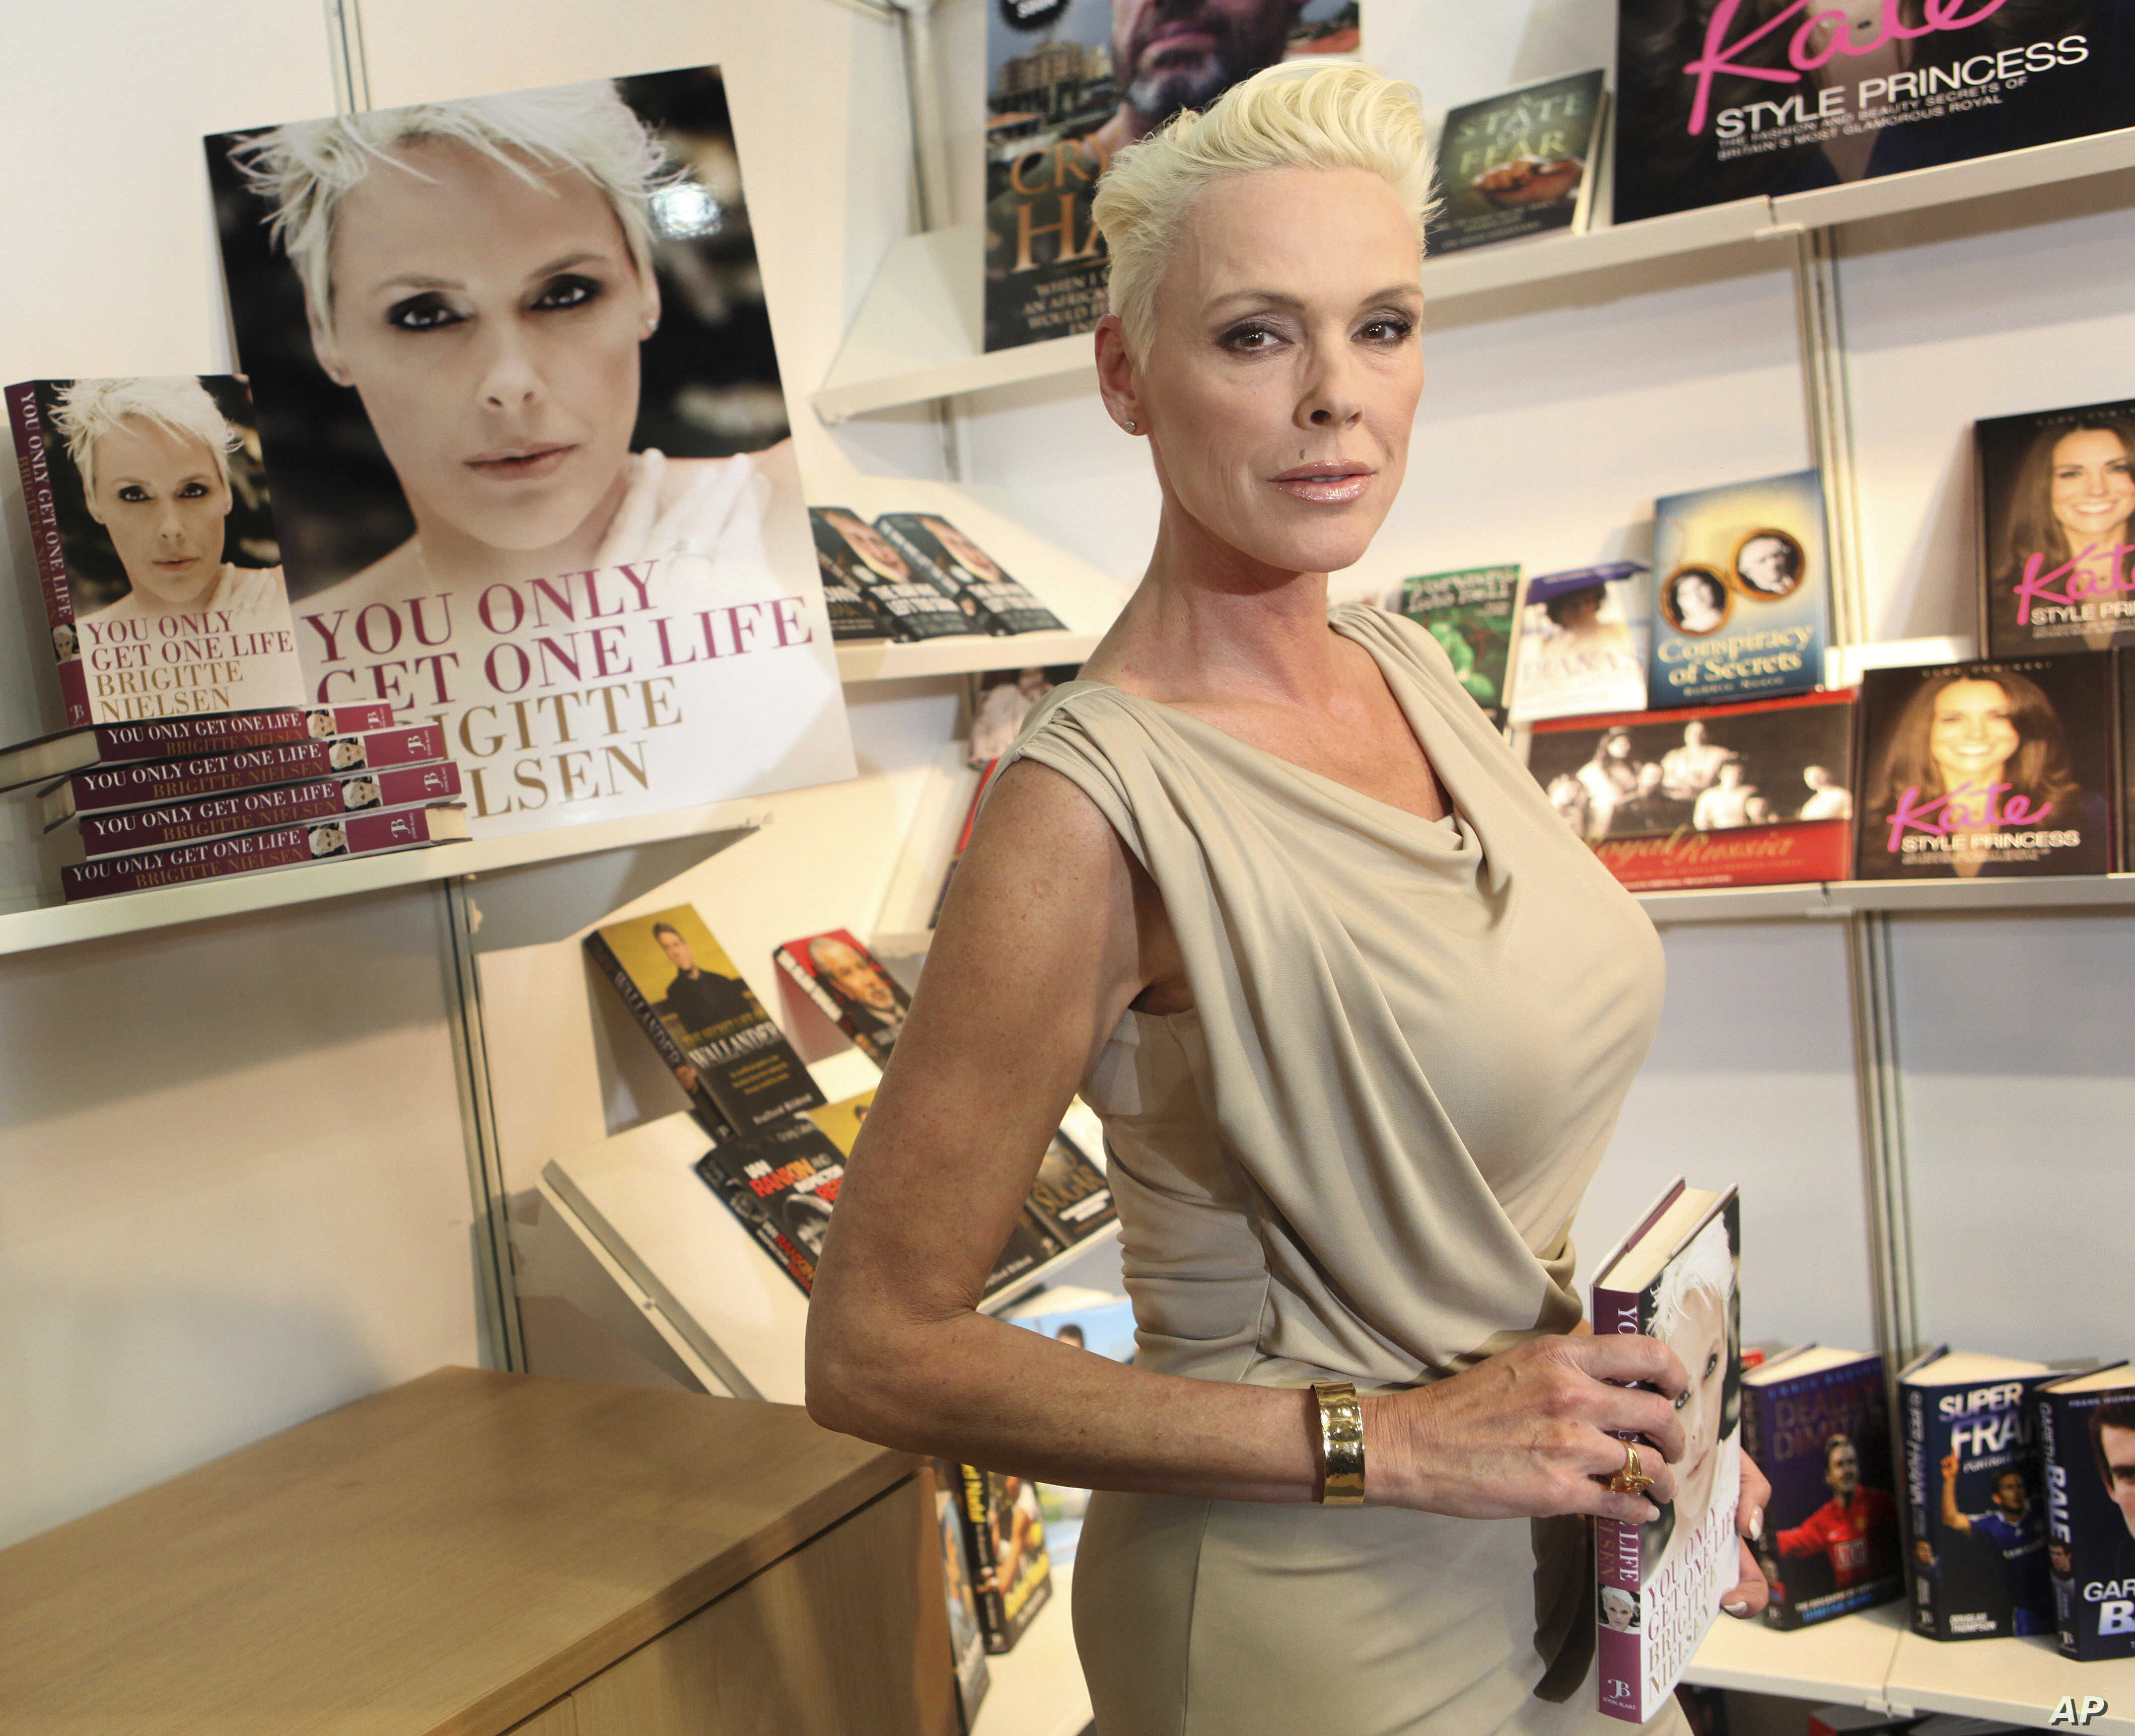 New Baby For Brigitte Nielsen Age 54 Opens Debate On Older